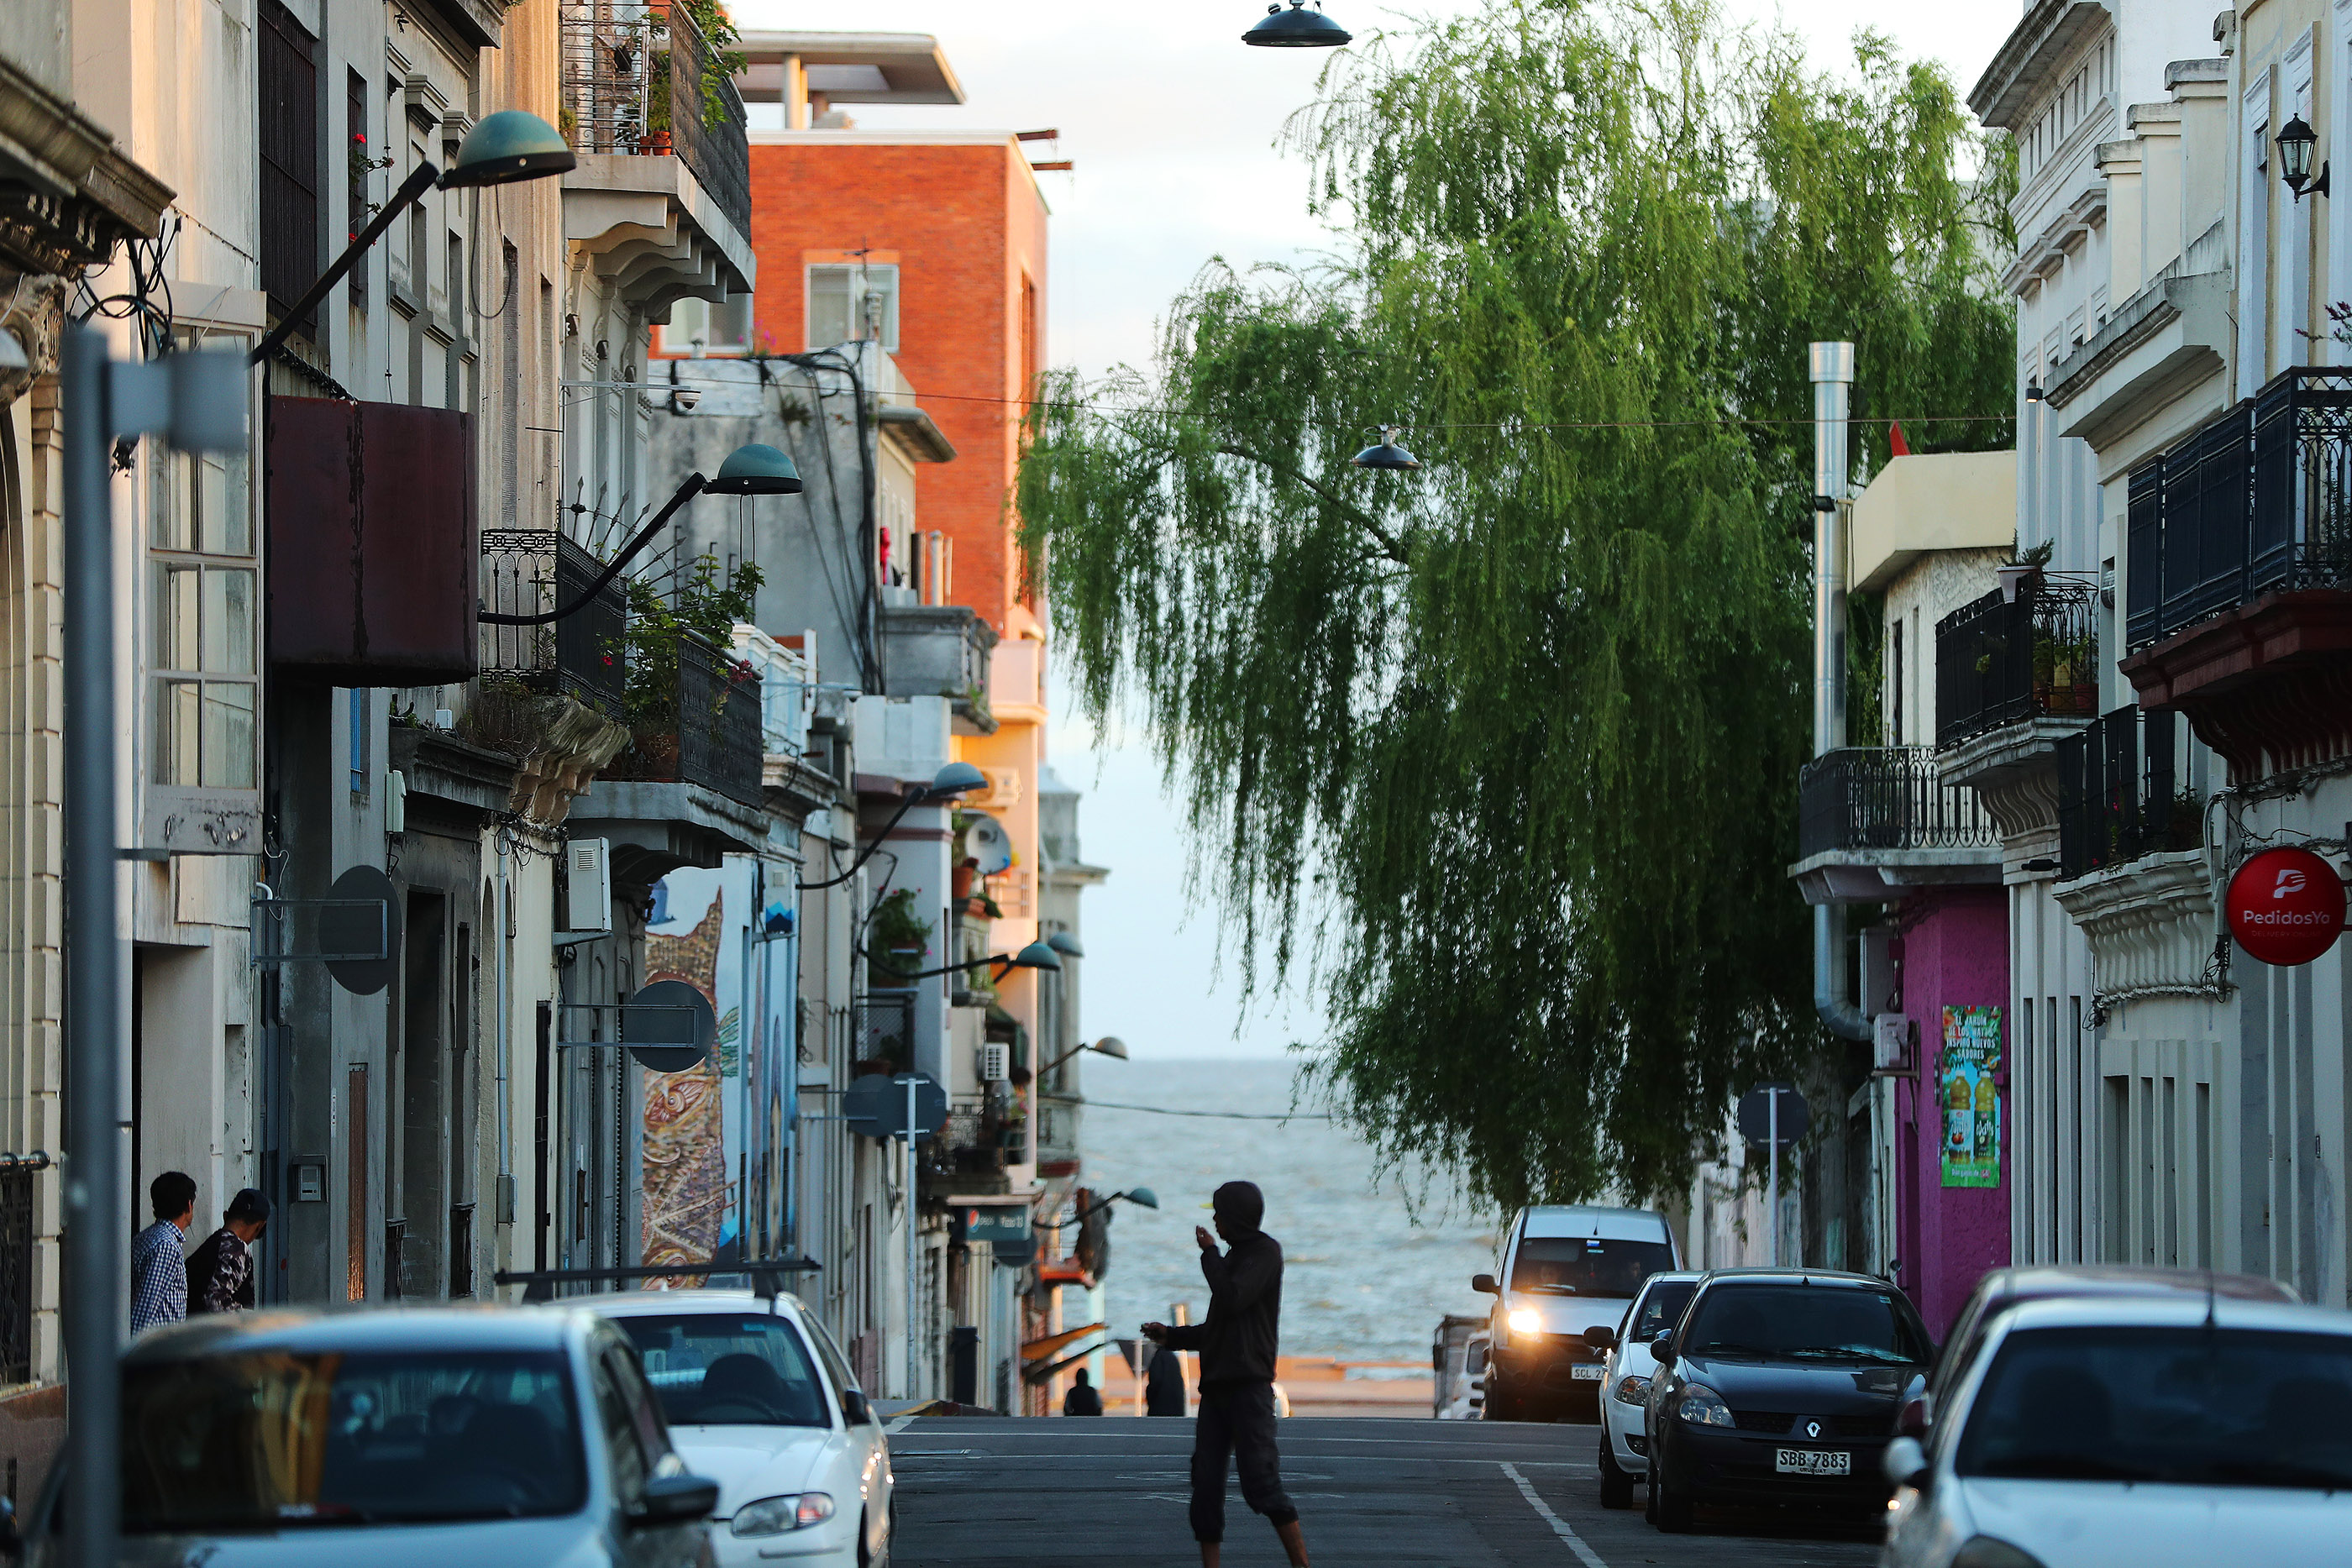 Pedestrians walking the streets in Old Town in Montevideo, Uruguay, on Thursday, Oct. 25, 2018.